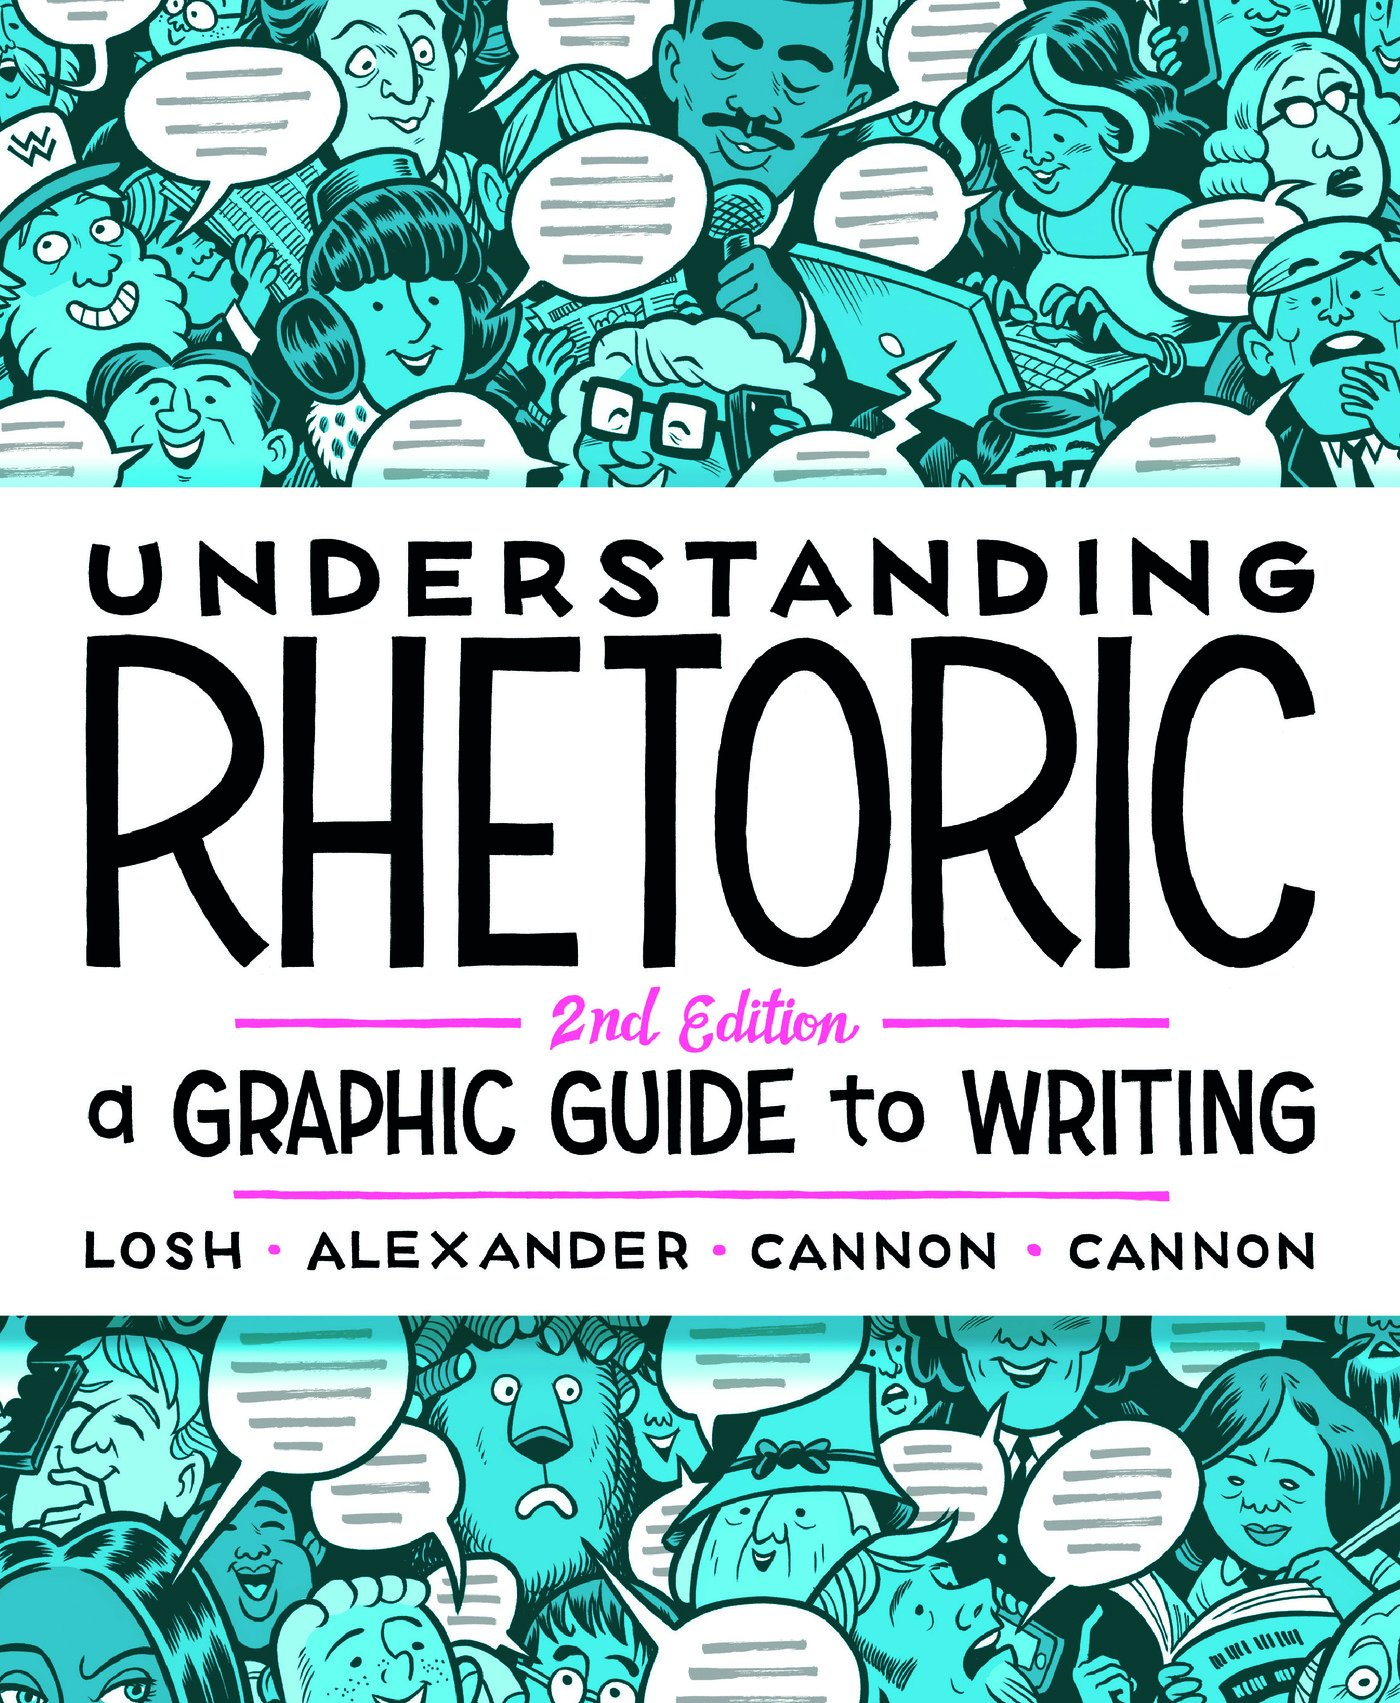 Understanding Rhetoric: A Graphic Guide to Writing by Bedford/St. Martin's